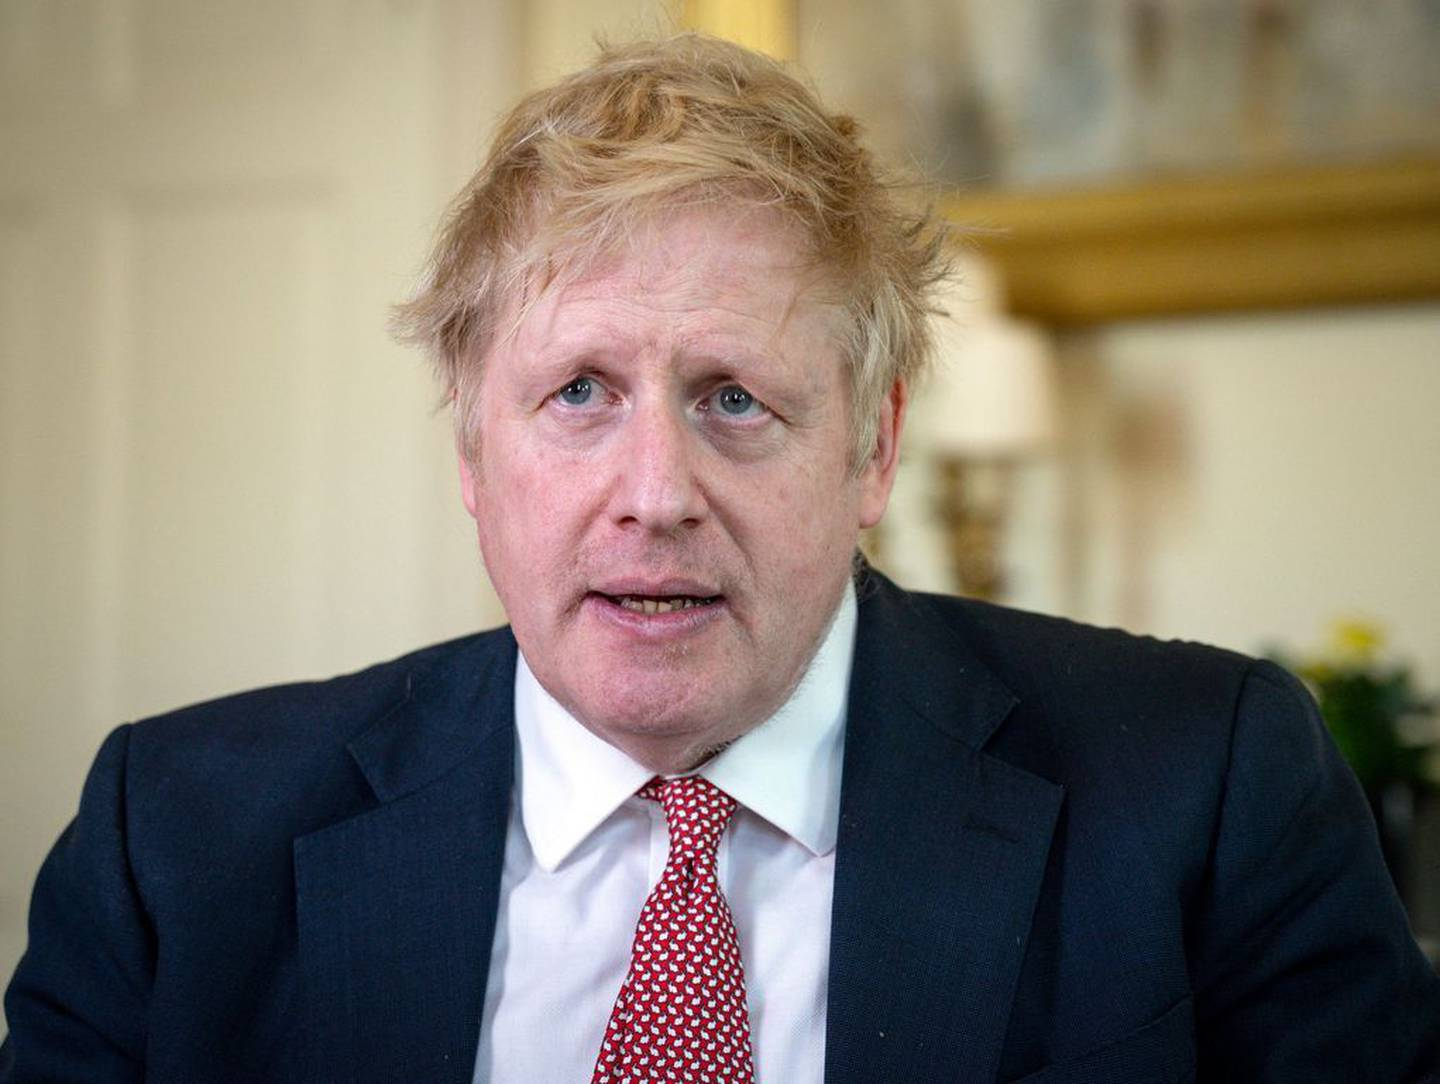 British Prime Minister Boris Johnson and fiancee Carrie Symonds have nominated the Kiwi nurse who saved Johnson's life for a major awards. Photo / AP